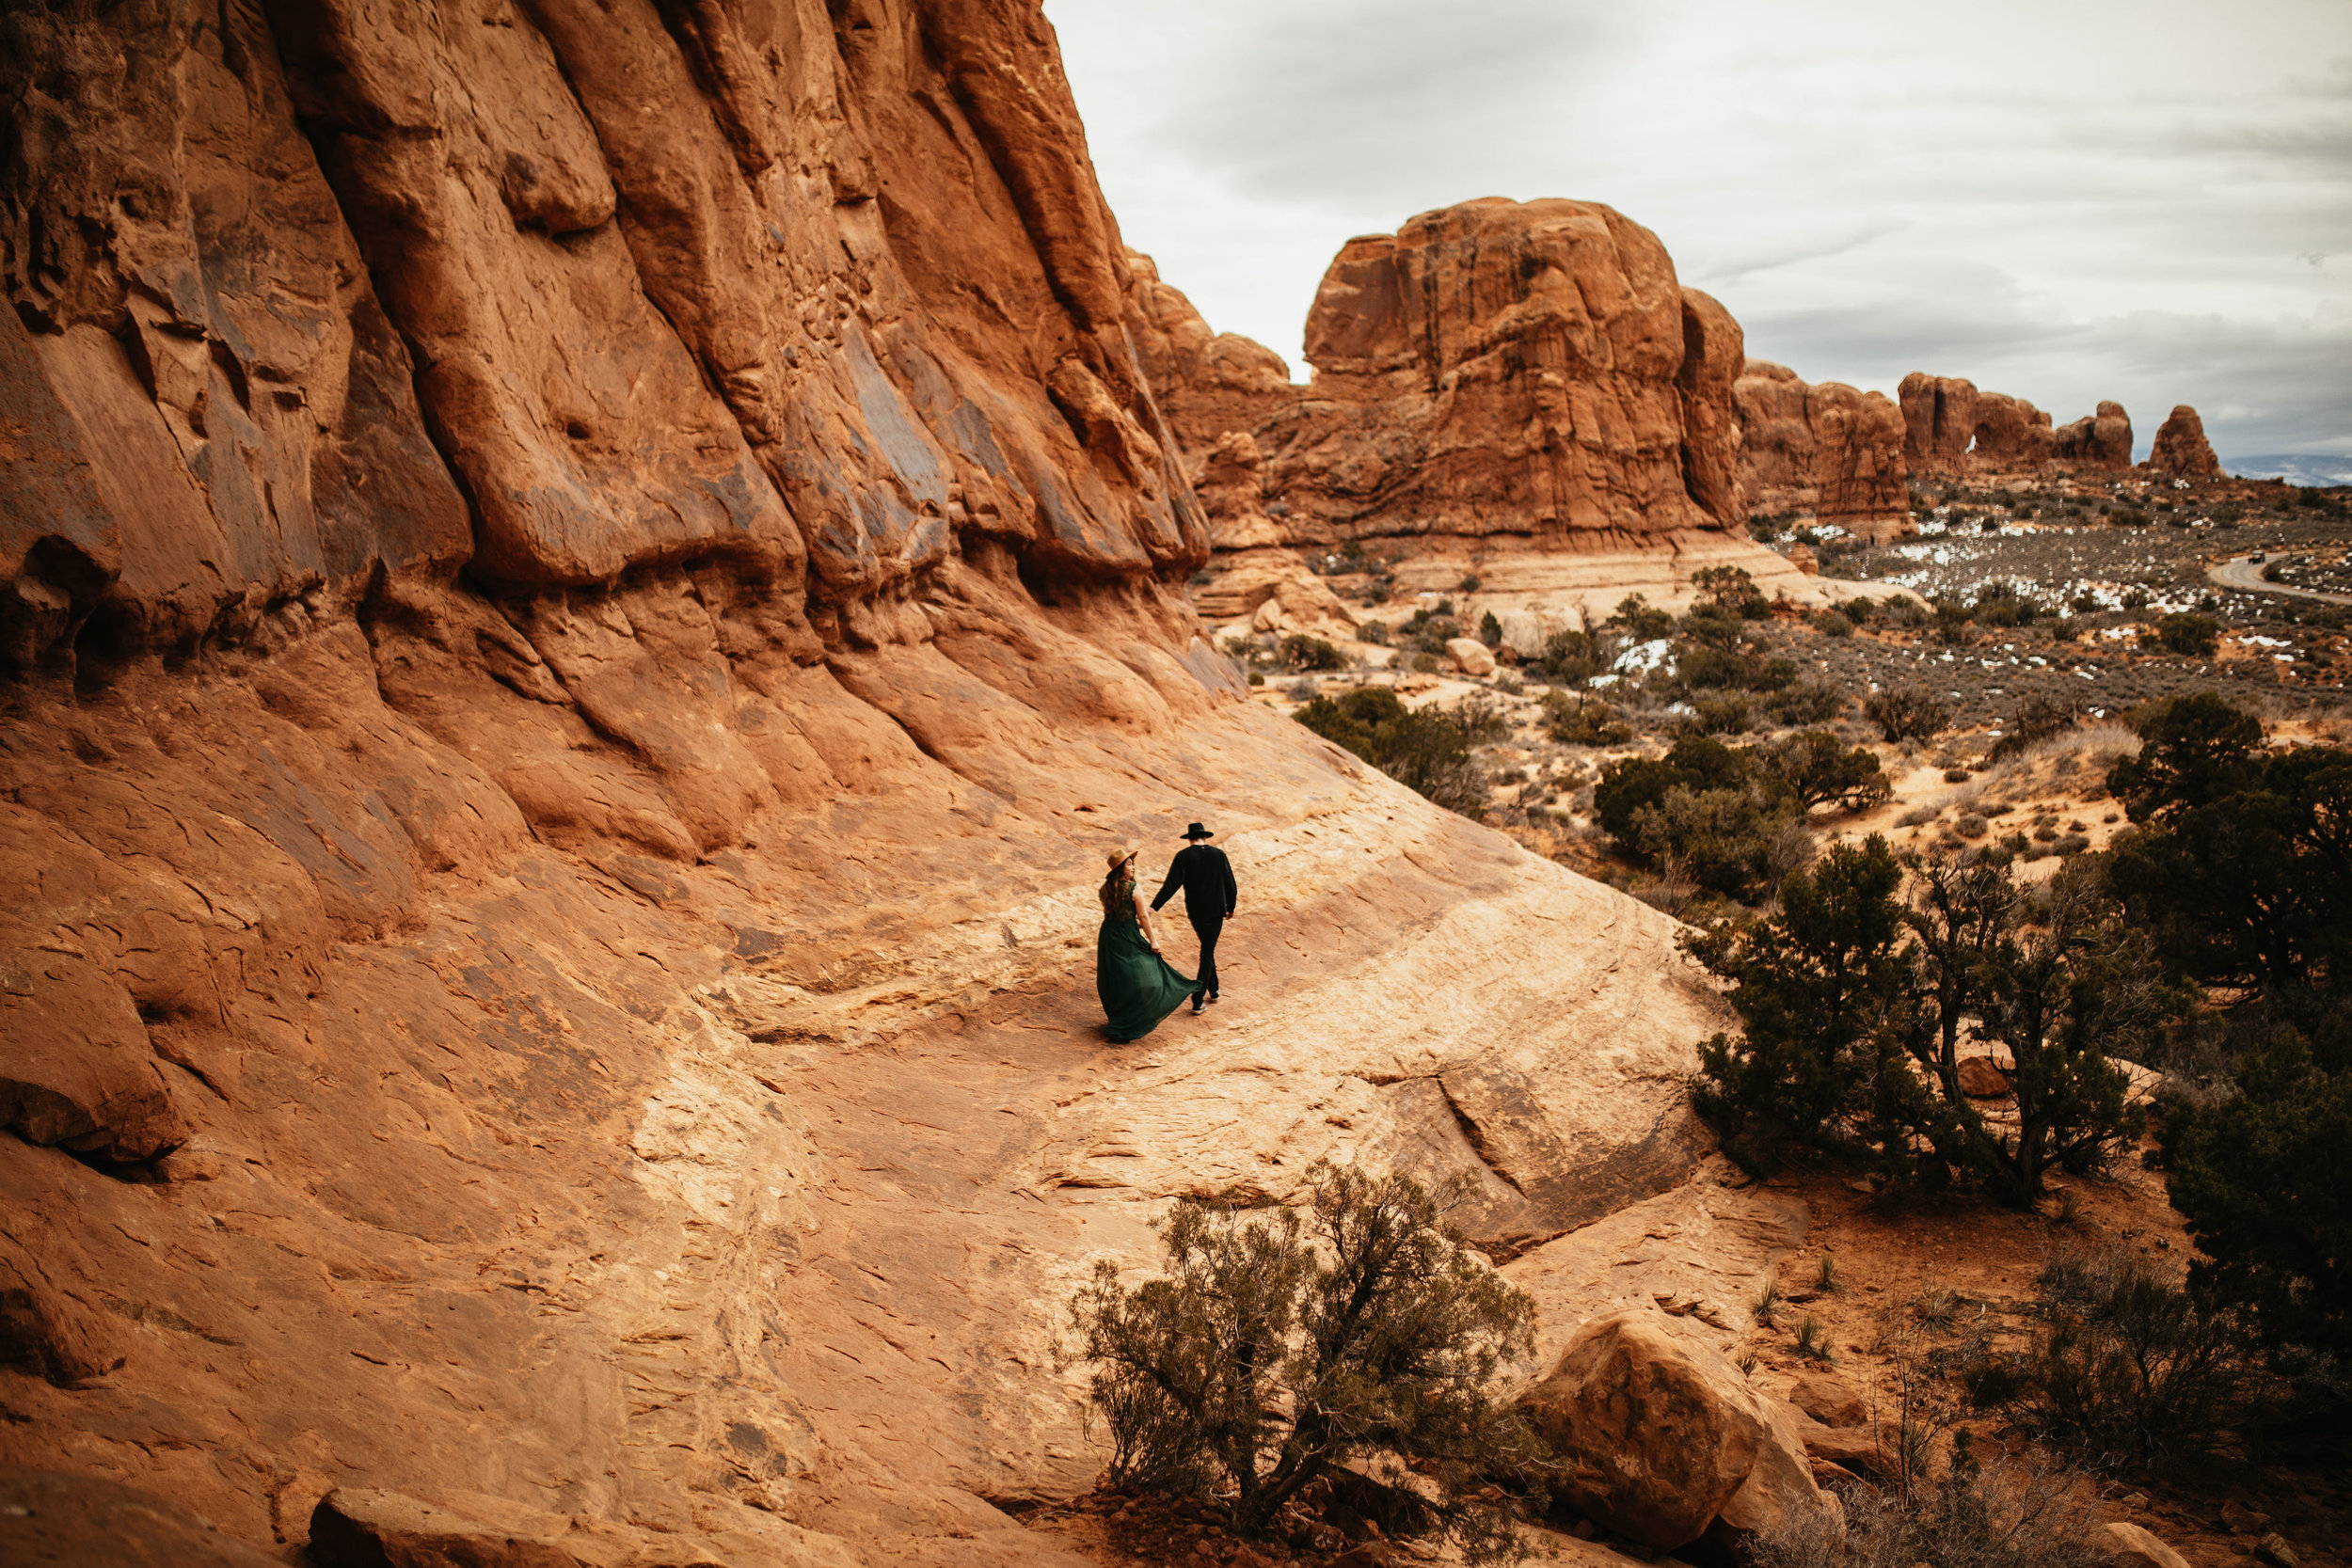 Couple Session in the desert | Arches National Park, Utah